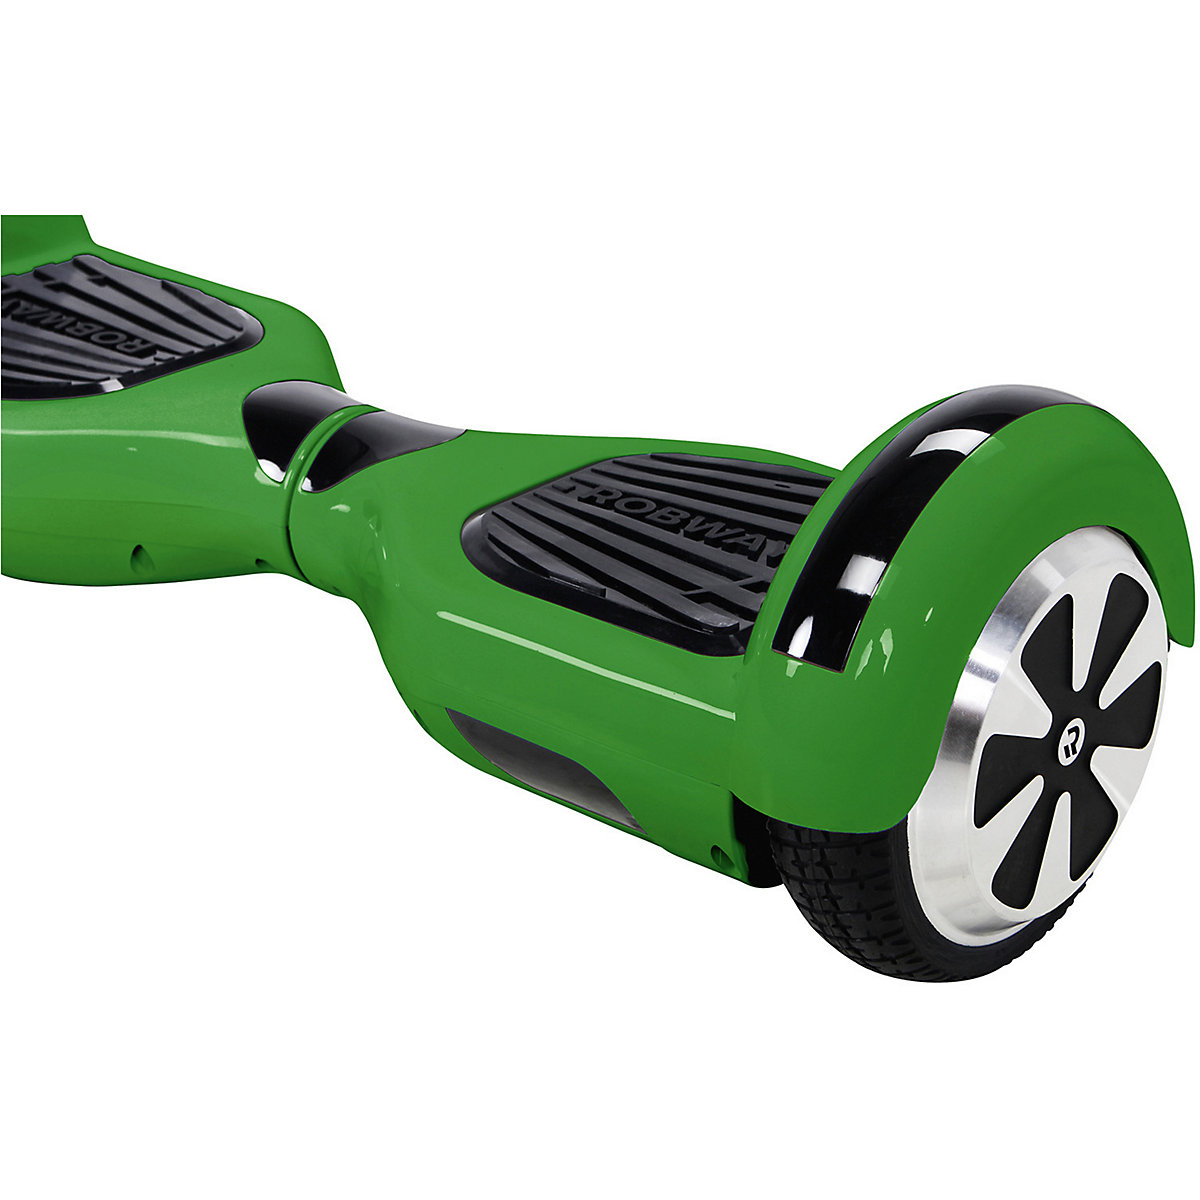 e balance hoverboard robway w1 6 5 zoll mit app funktion gr n robway mytoys. Black Bedroom Furniture Sets. Home Design Ideas